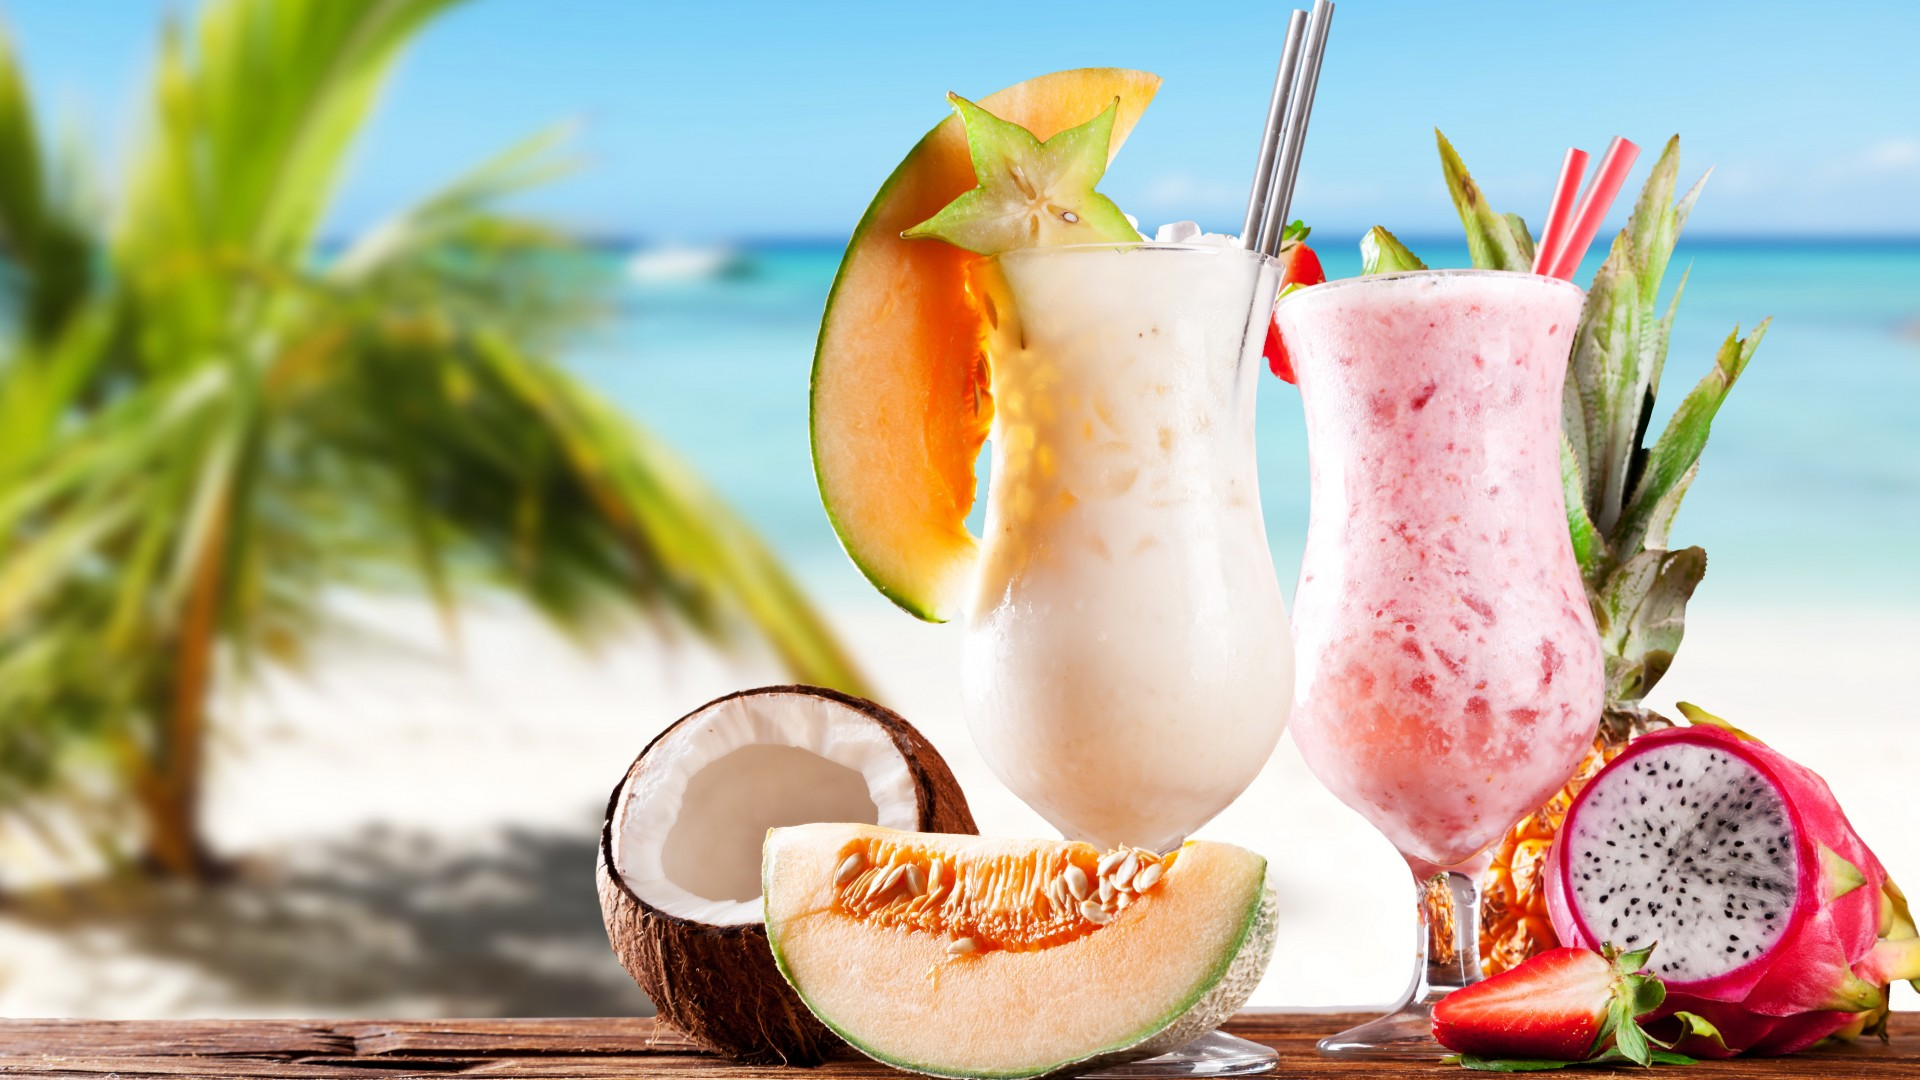 milk shake, drinks, cocktail, summer, sun, fruit, pineapple, Pitahaya, carambola, pineapple, coconut, melon, strawberries